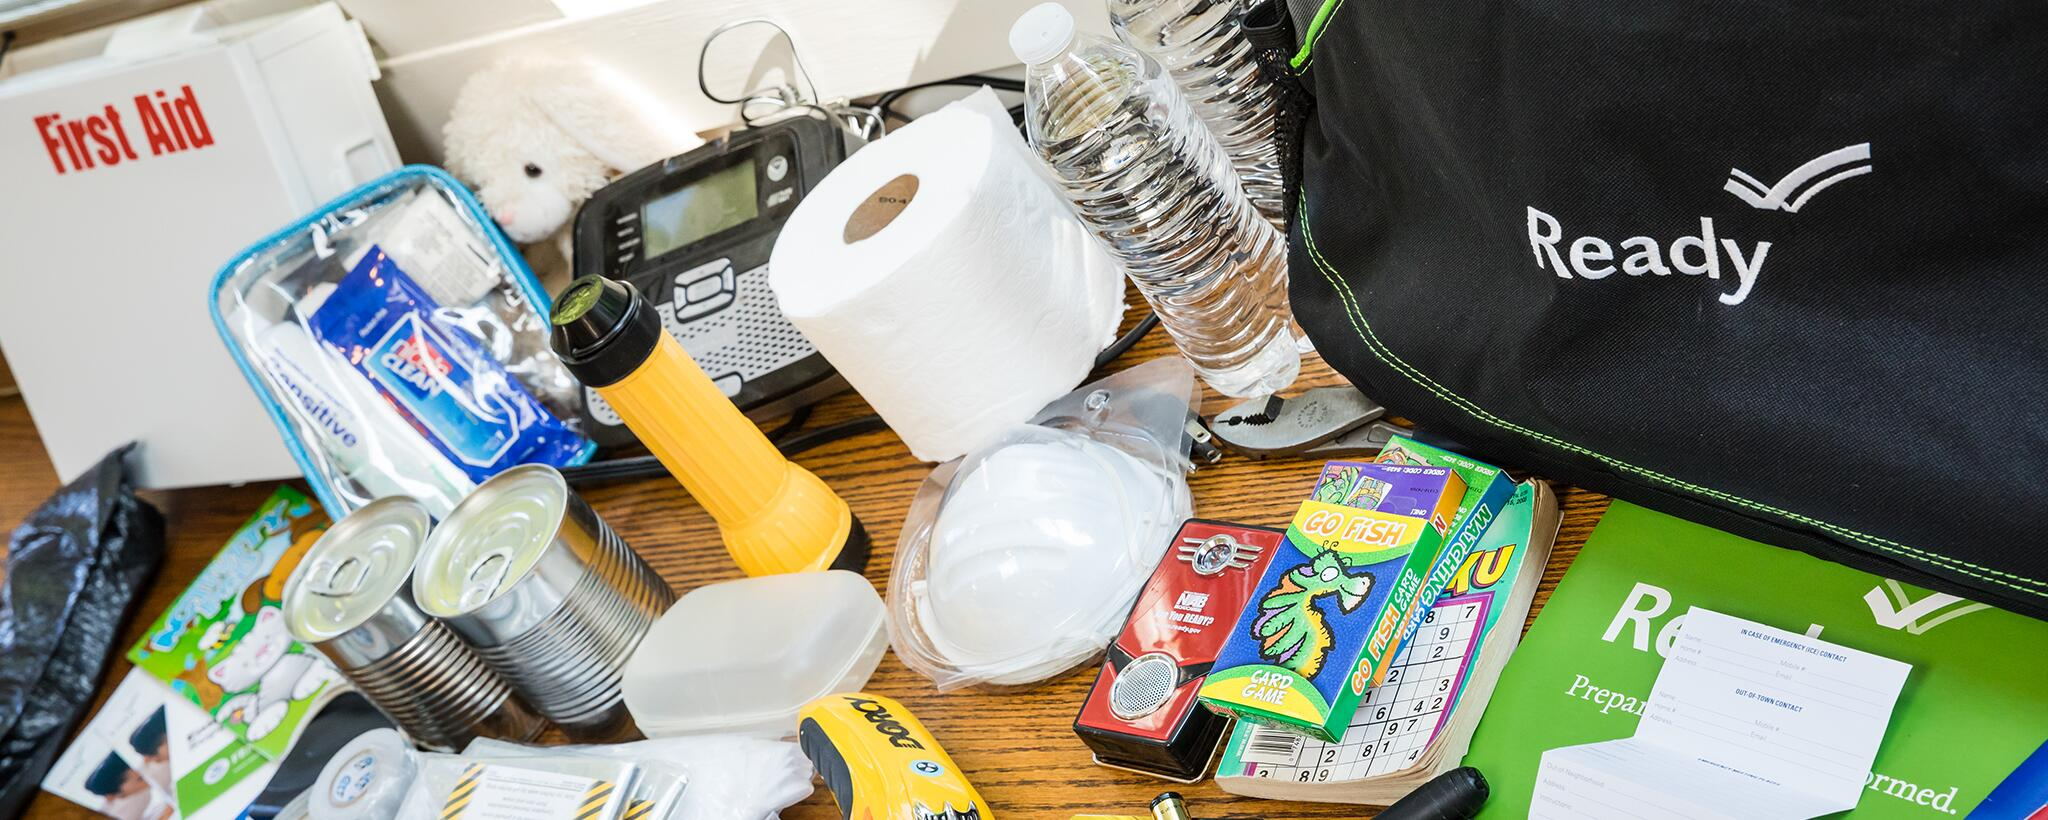 Contents of an emergency supply kit